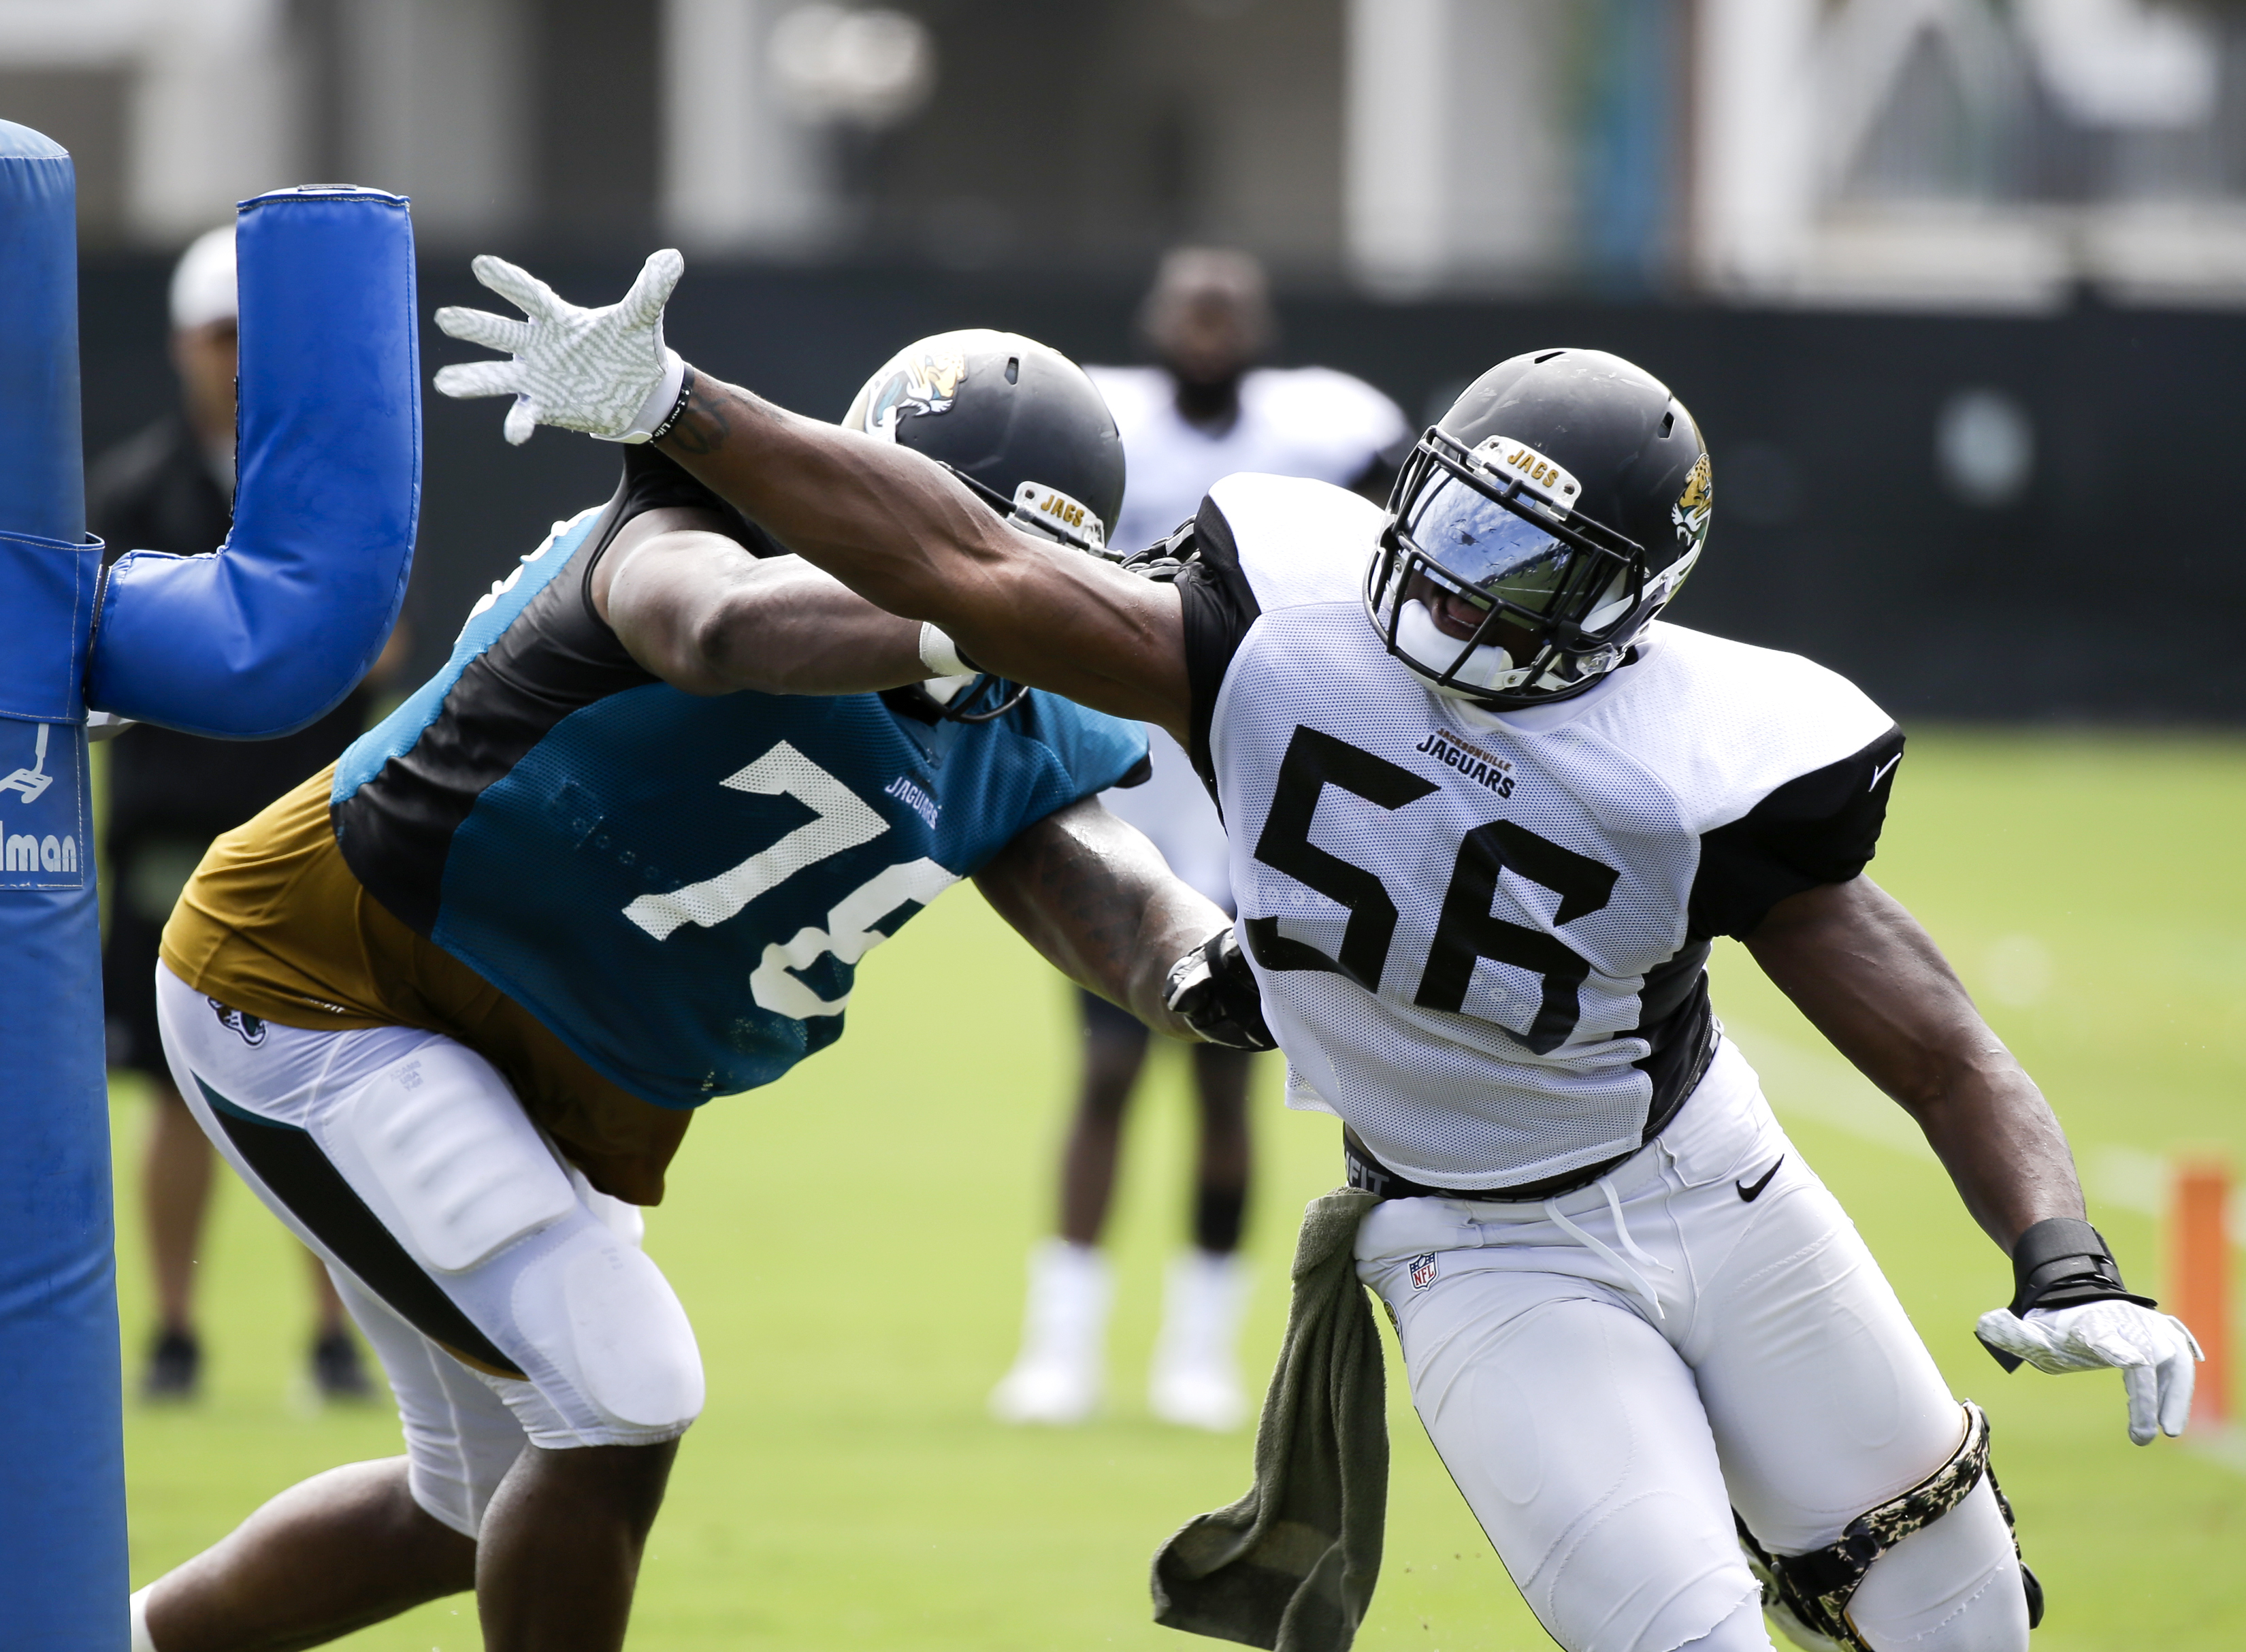 Jacksonville Jaguars defensive end Dante Fowler Jr., (56) works to get around offensive tackle Jermey Parnell (78) during a drill at NFL football training camp, Tuesday, Aug. 2, 2016, in Jacksonville, Fla. (AP Photo/John Raoux)